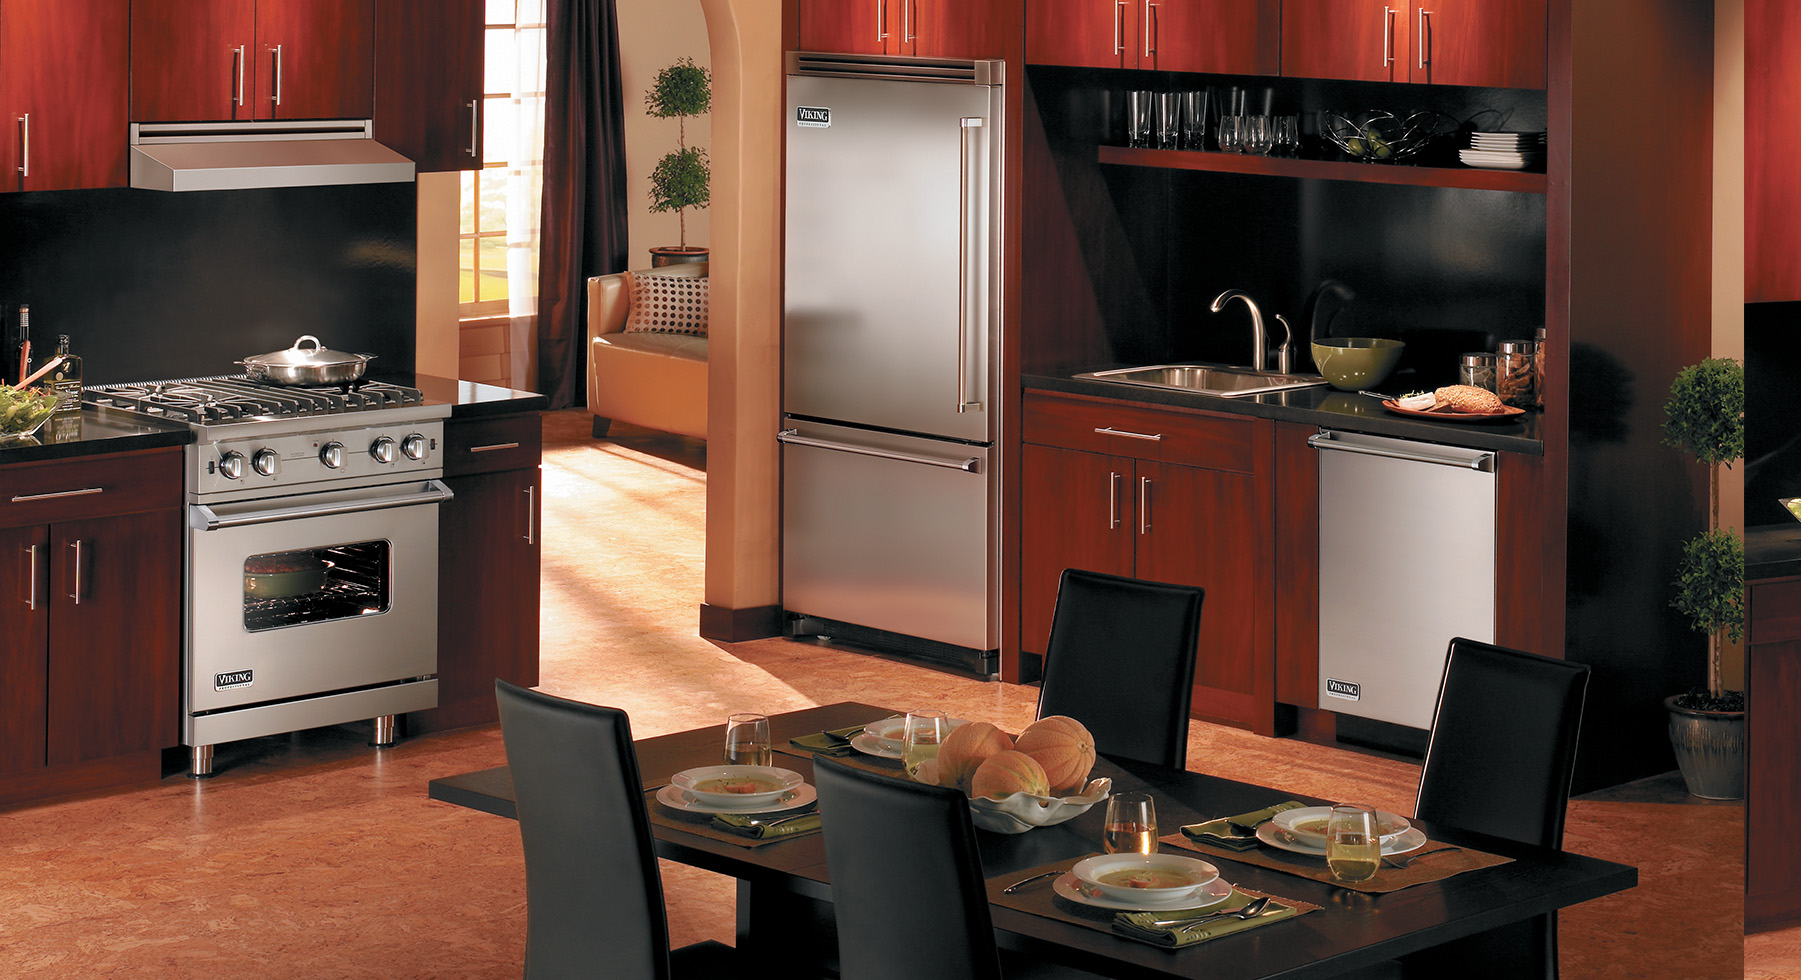 viking professional kitchens - Kitchen Appliance